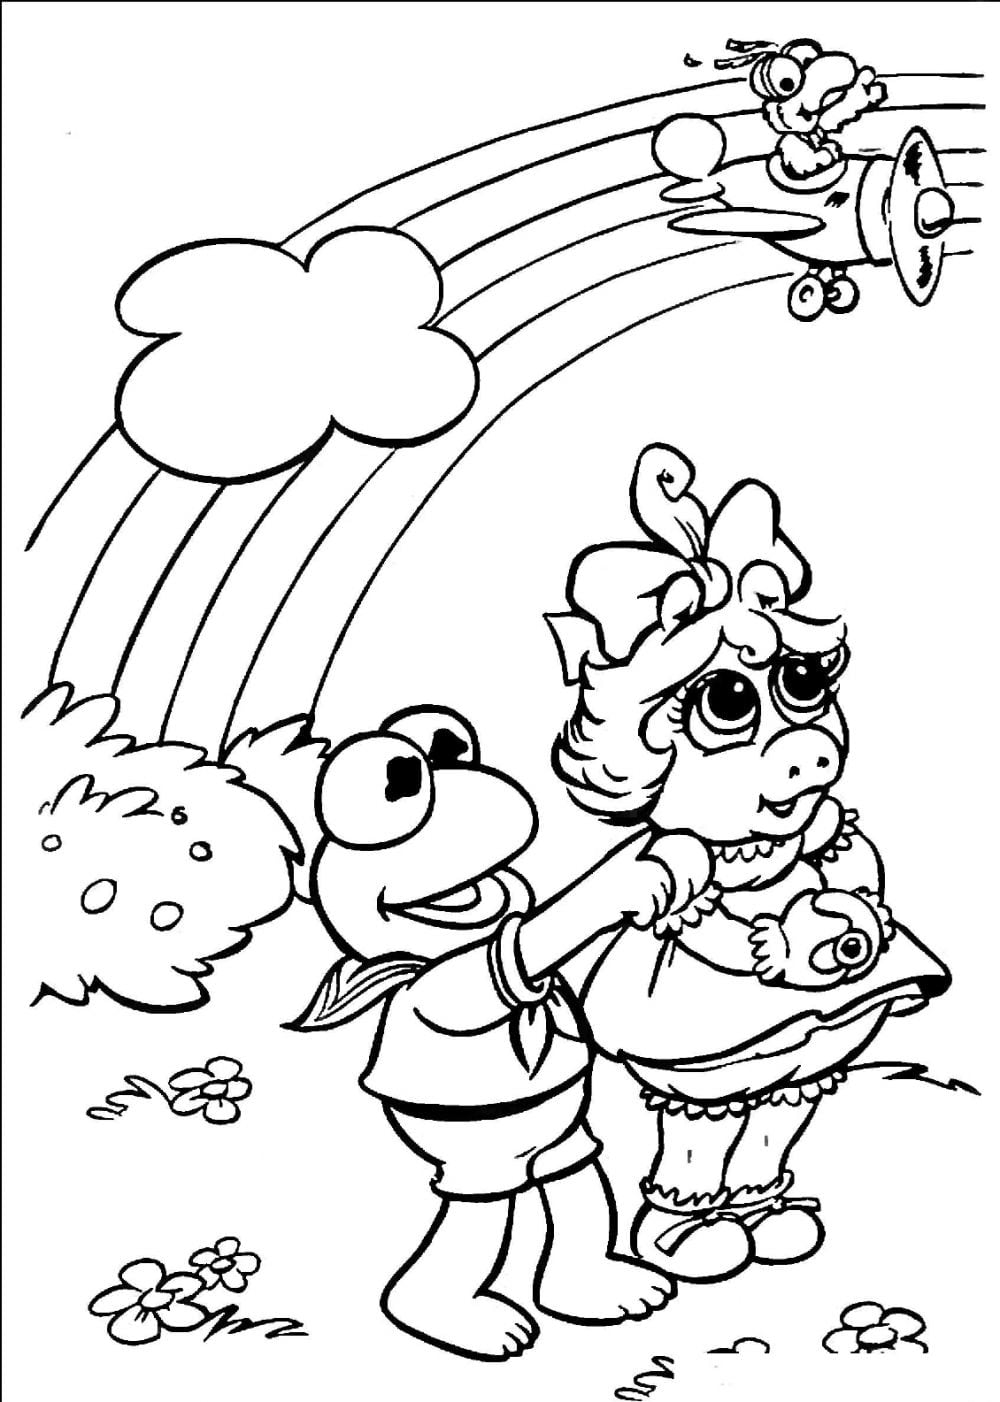 Free Printable Rainbow Coloring Pages For Kids – NEO Coloring